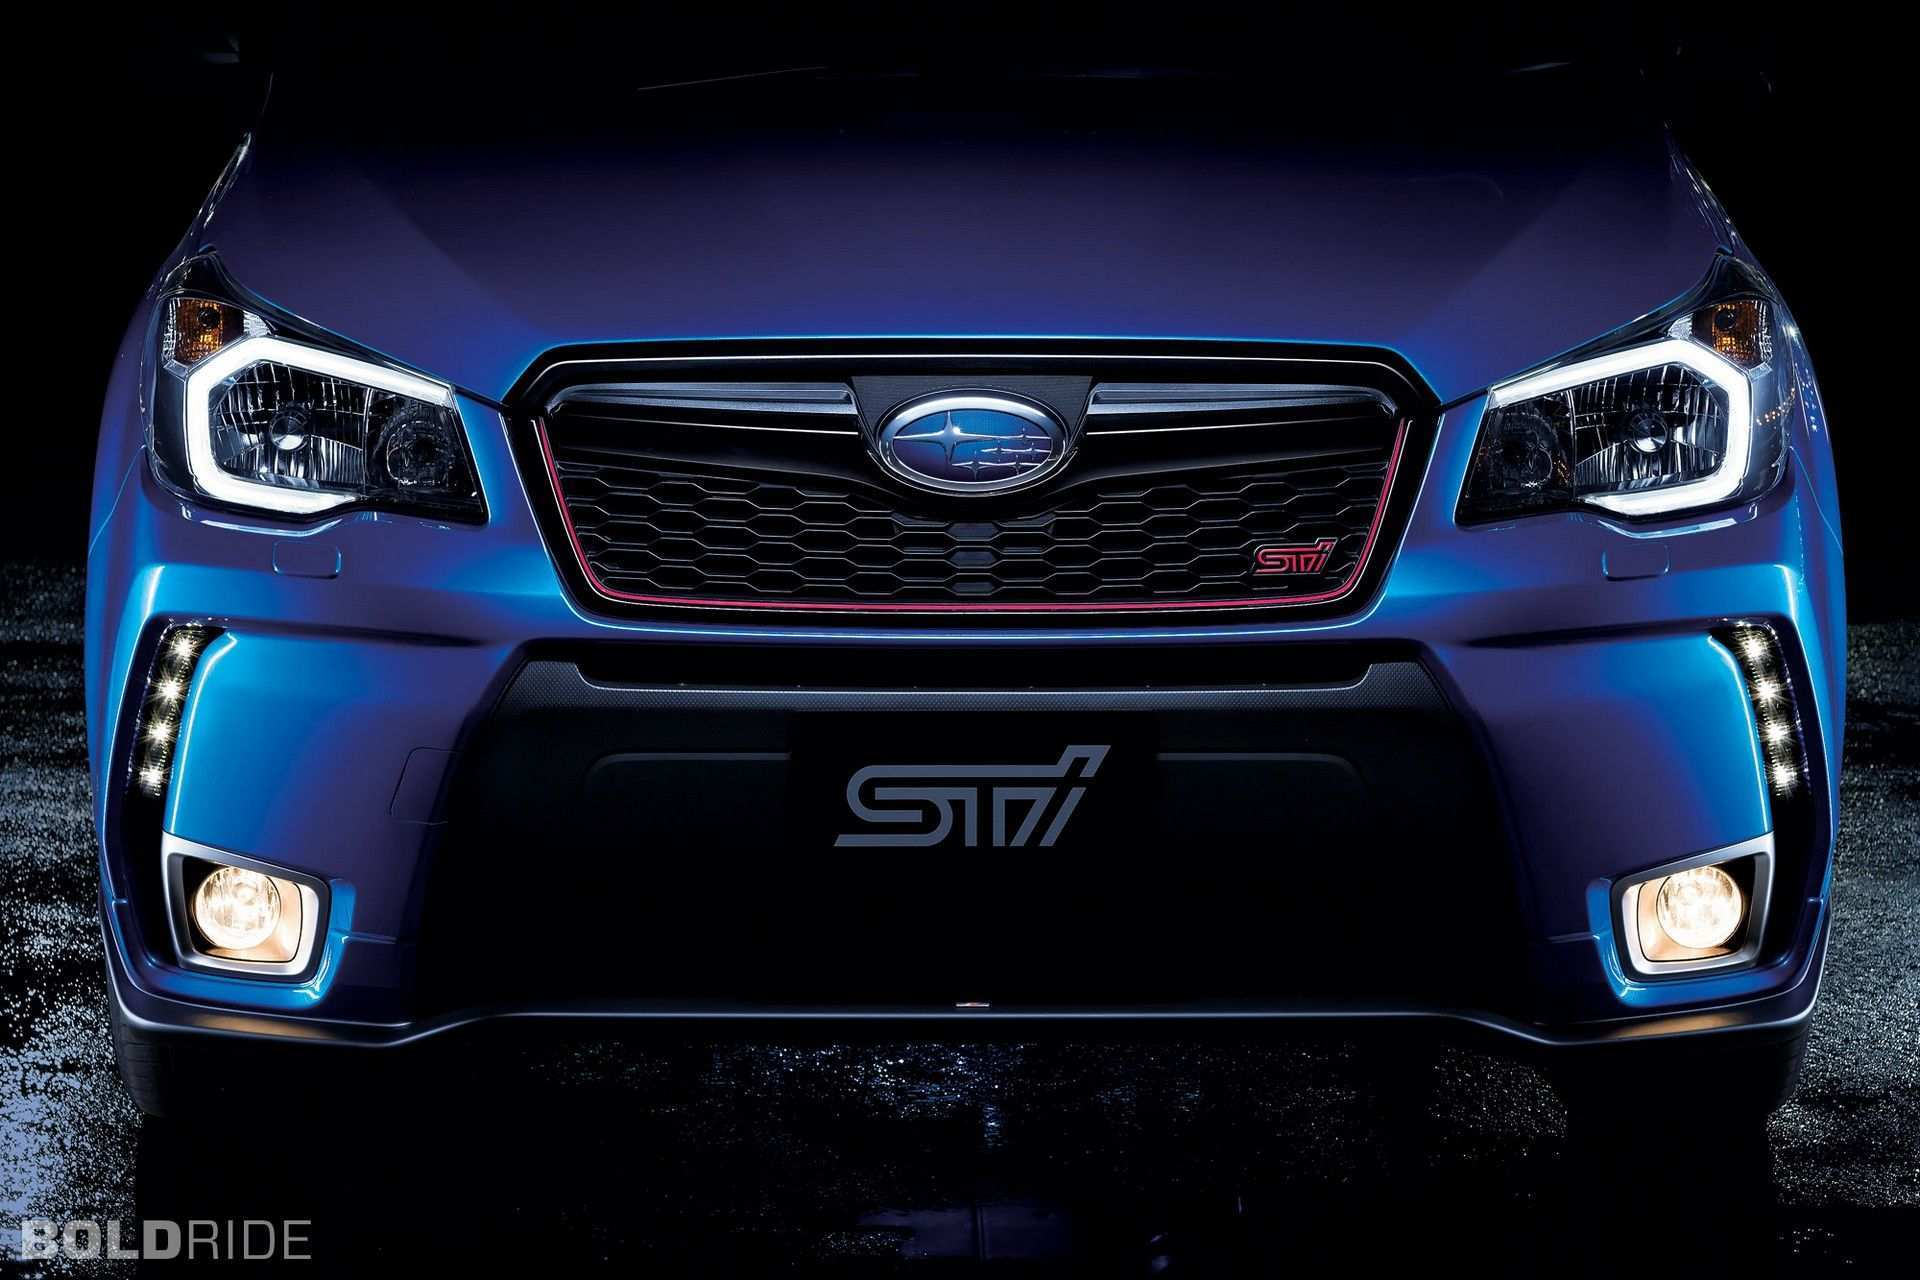 15 Gallery of Subaru Forester Xt 2020 Reviews by Subaru Forester Xt 2020